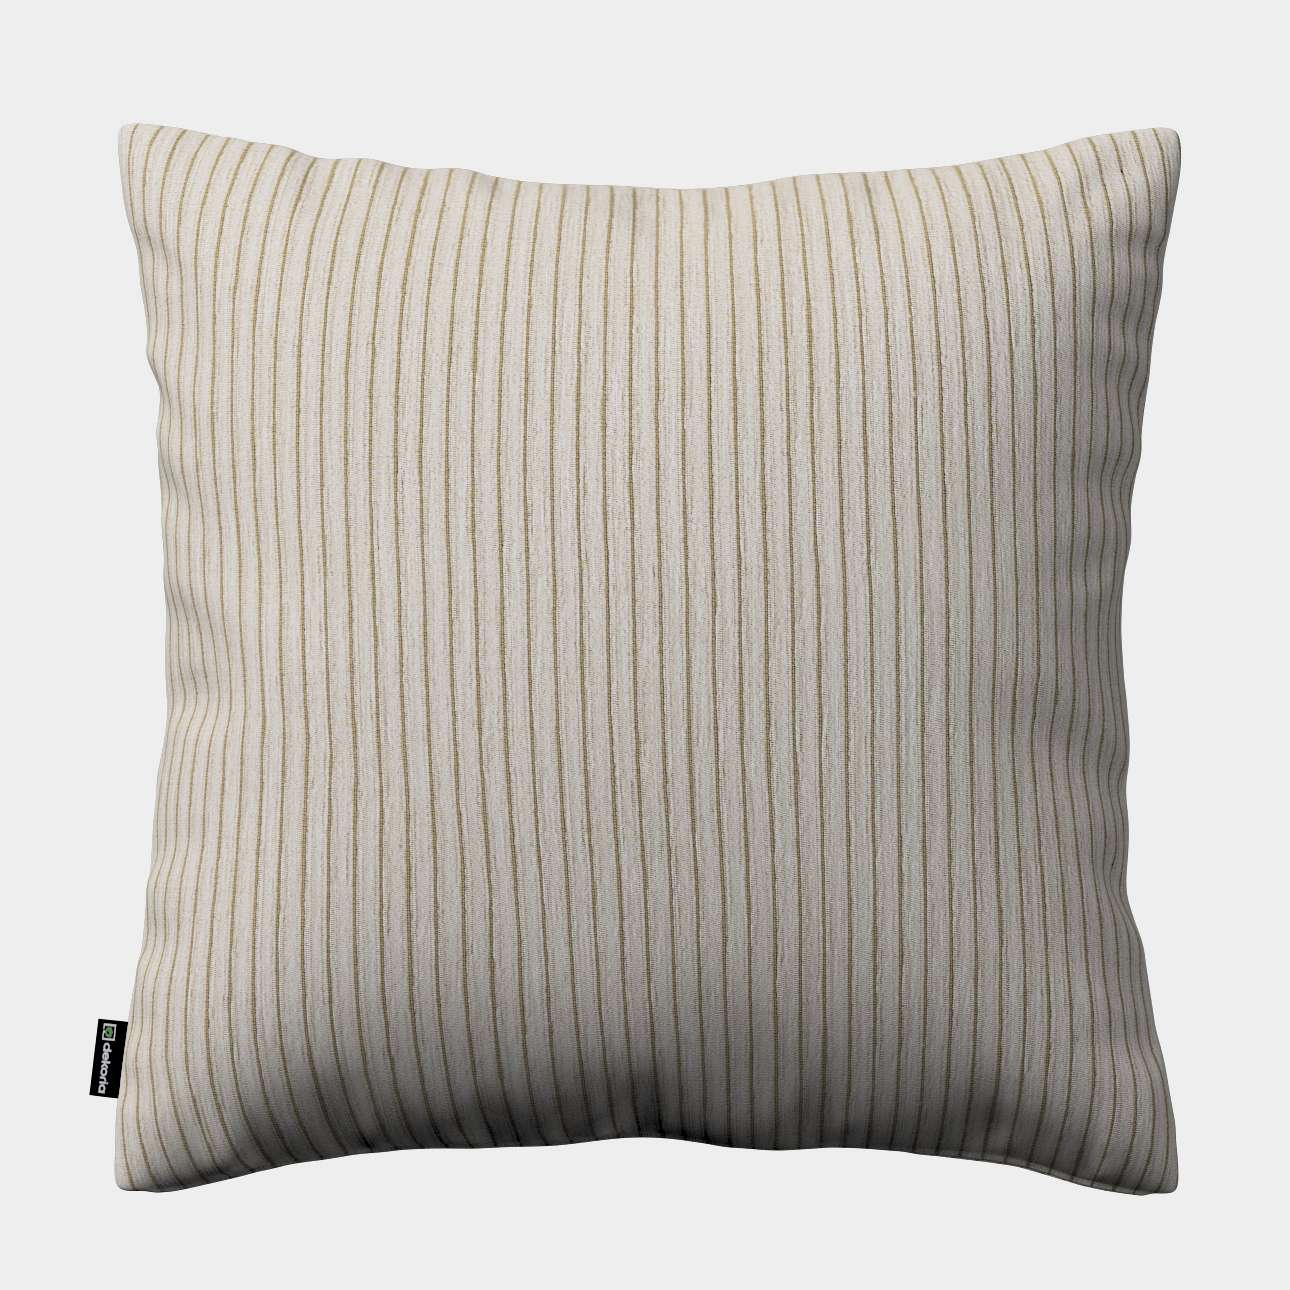 Kinga cushion cover 43 × 43 cm (17 × 17 inch) in collection Living, fabric: 105-90